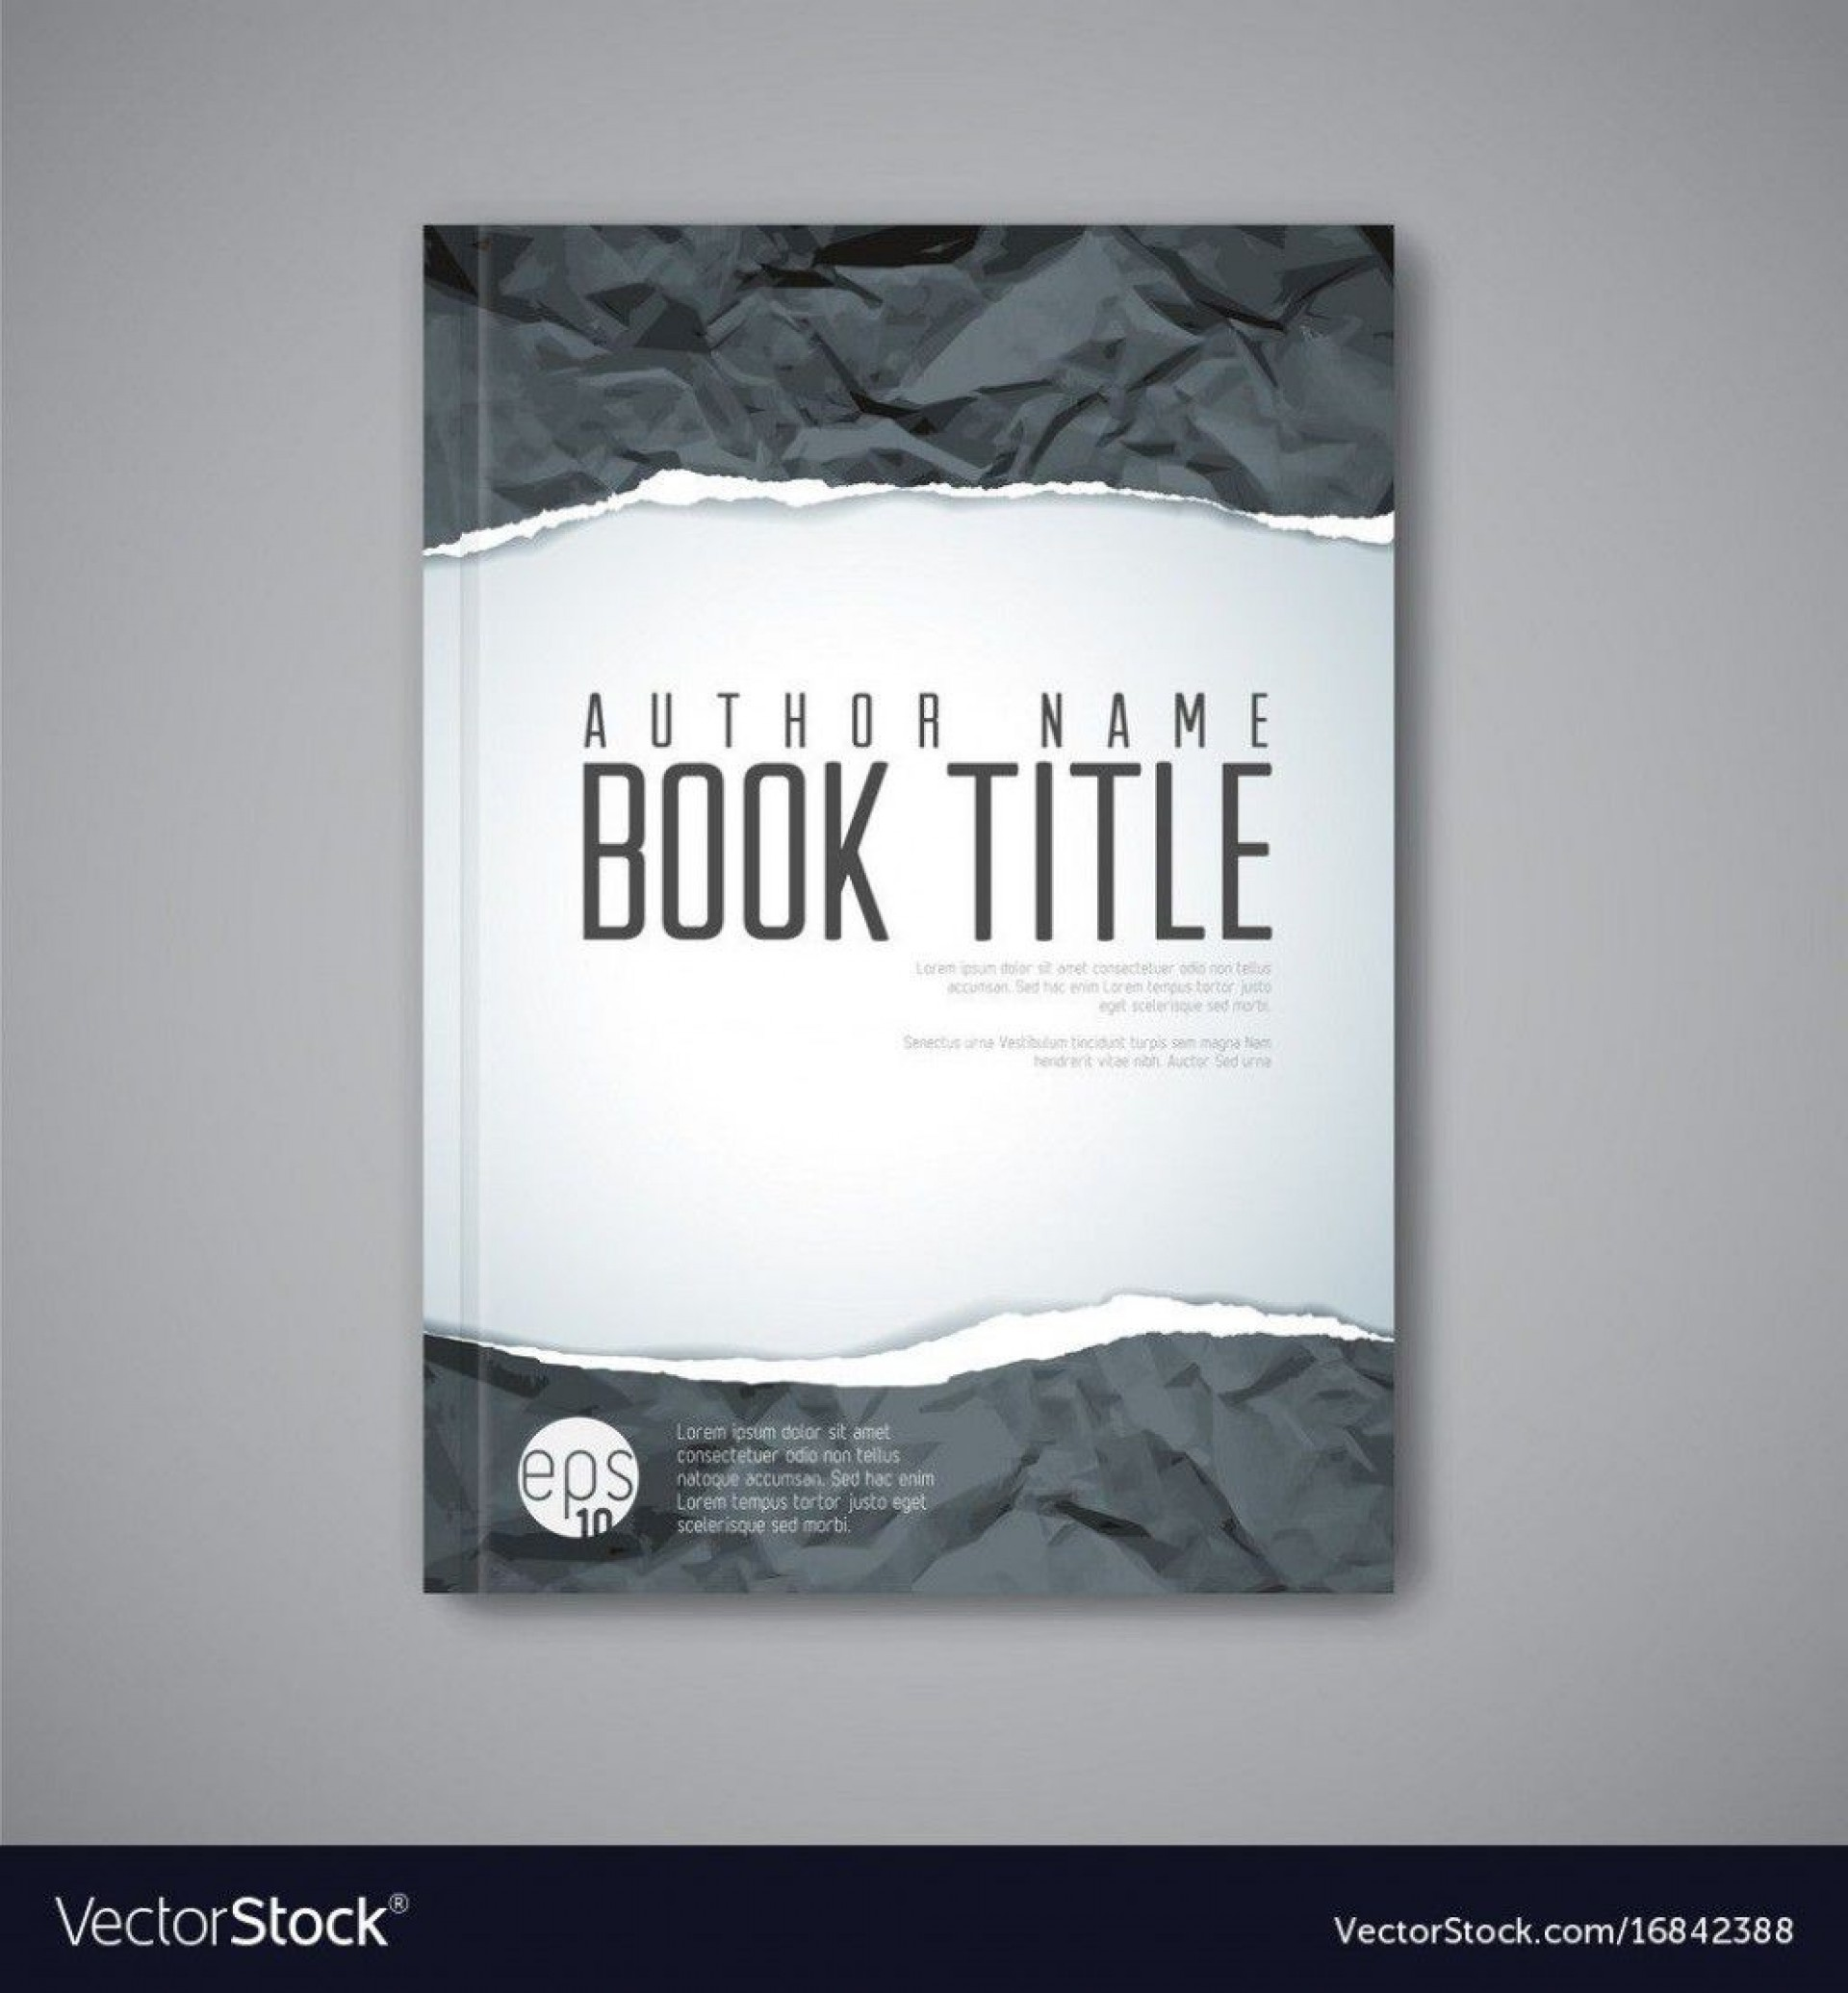 001 Awful Book Cover Template Free Download Image  Illustrator Design Vector Illustration1920